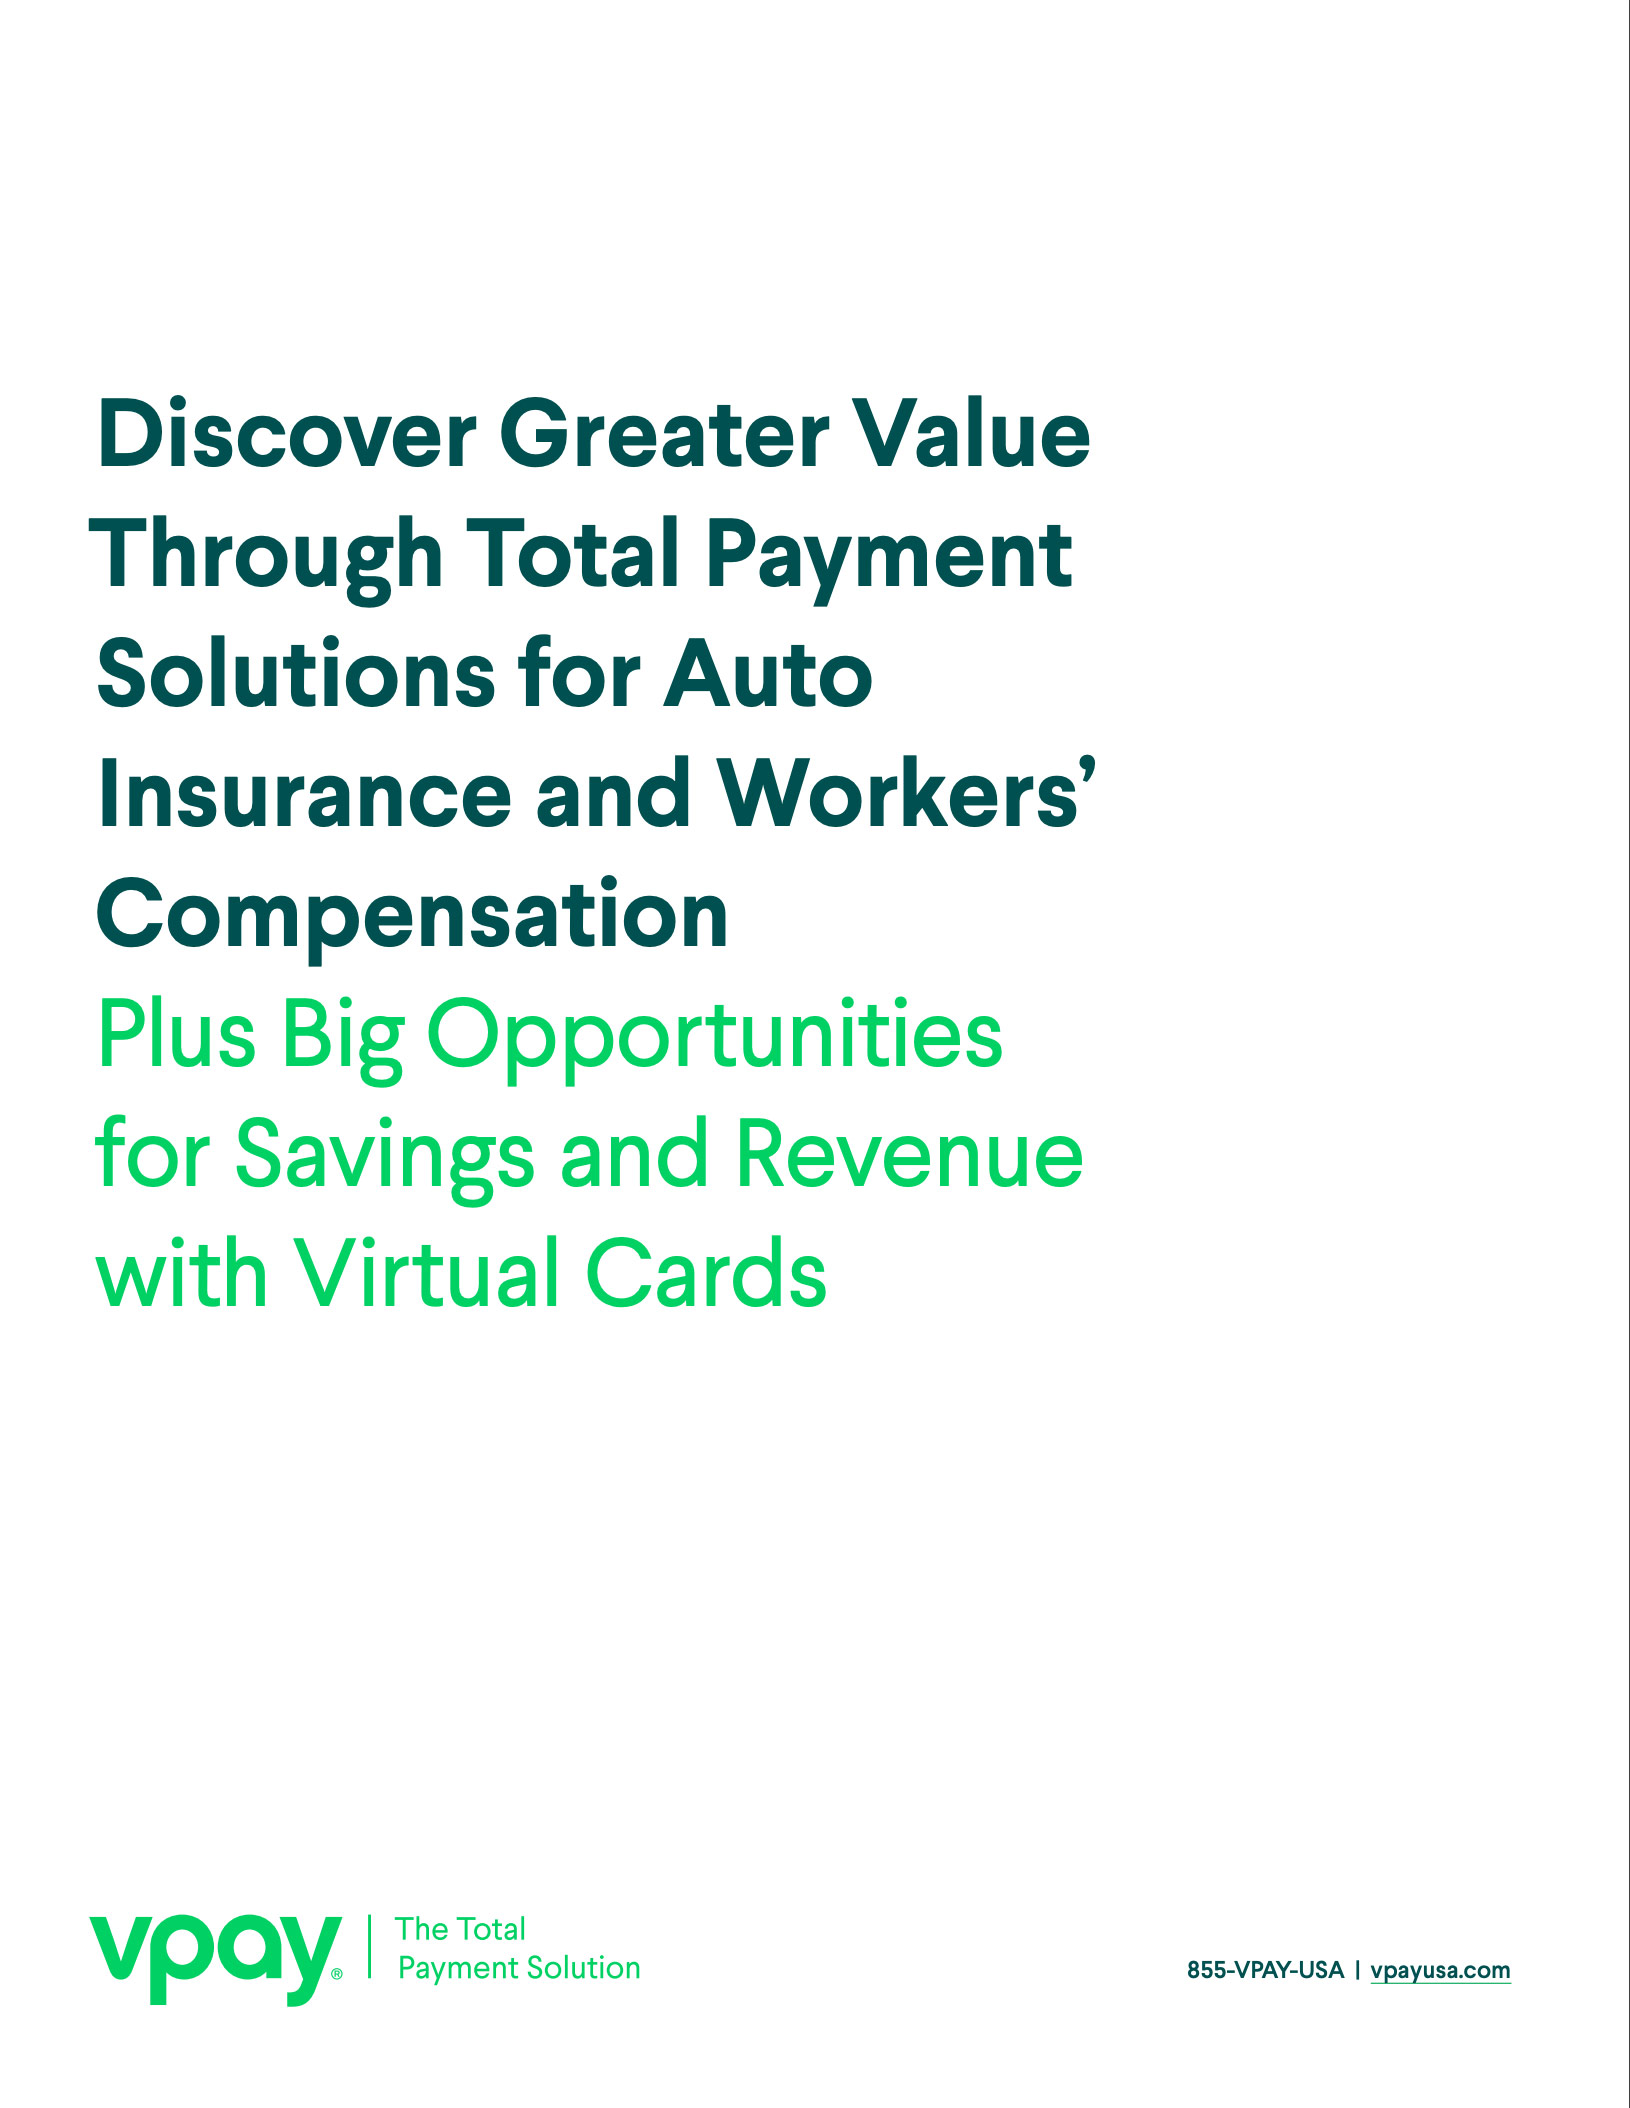 Discover Greater Value Through Total Payment Solutions